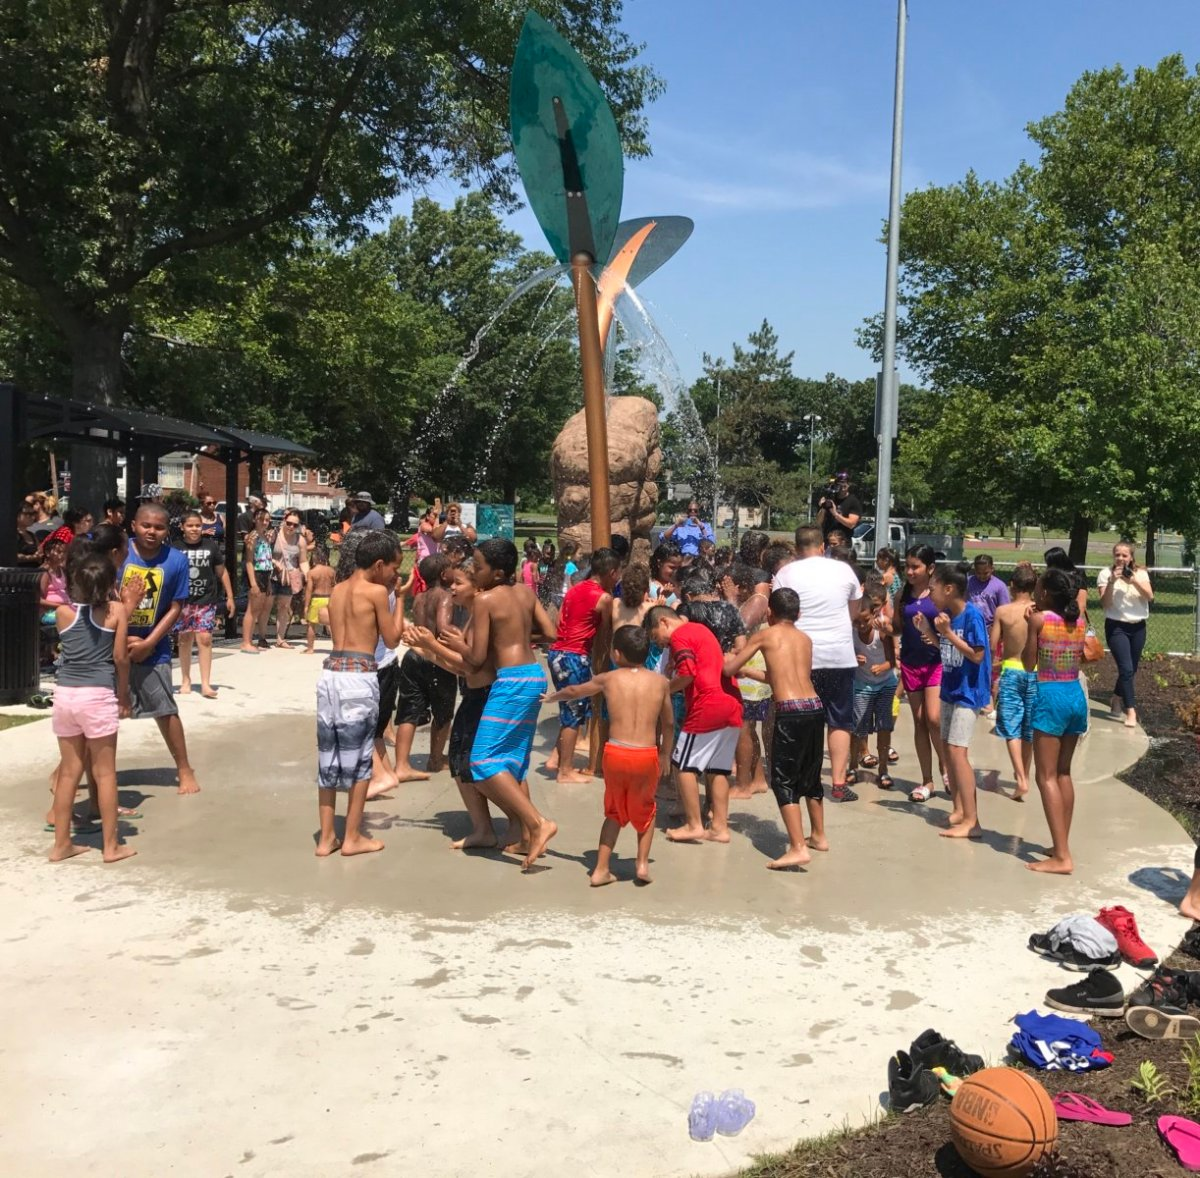 Photos: Camden's Von Nieda Park Sprayground Now Open